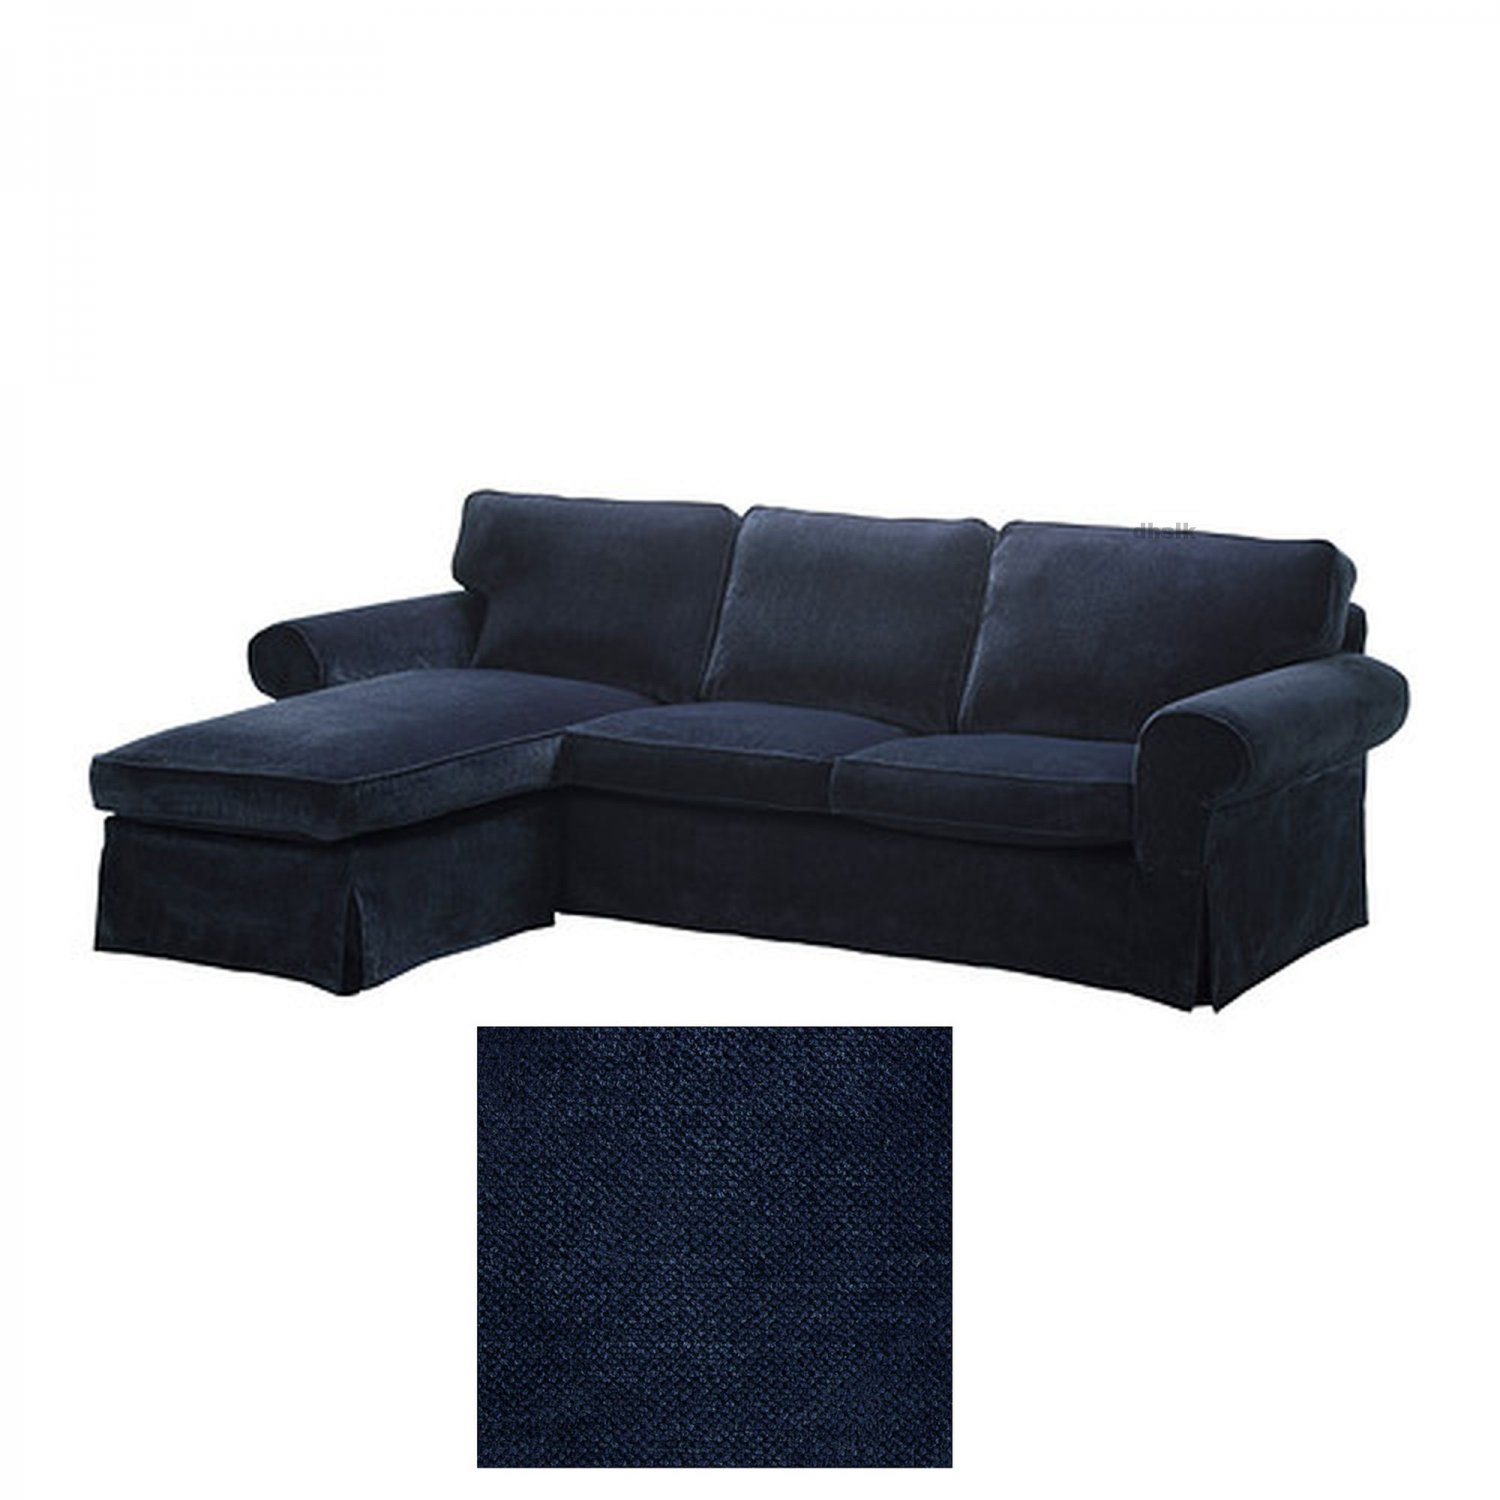 IKEA EKTORP 2 Seat Loveseat sofa with Chaise COVER Slipcover VELLINGE ...